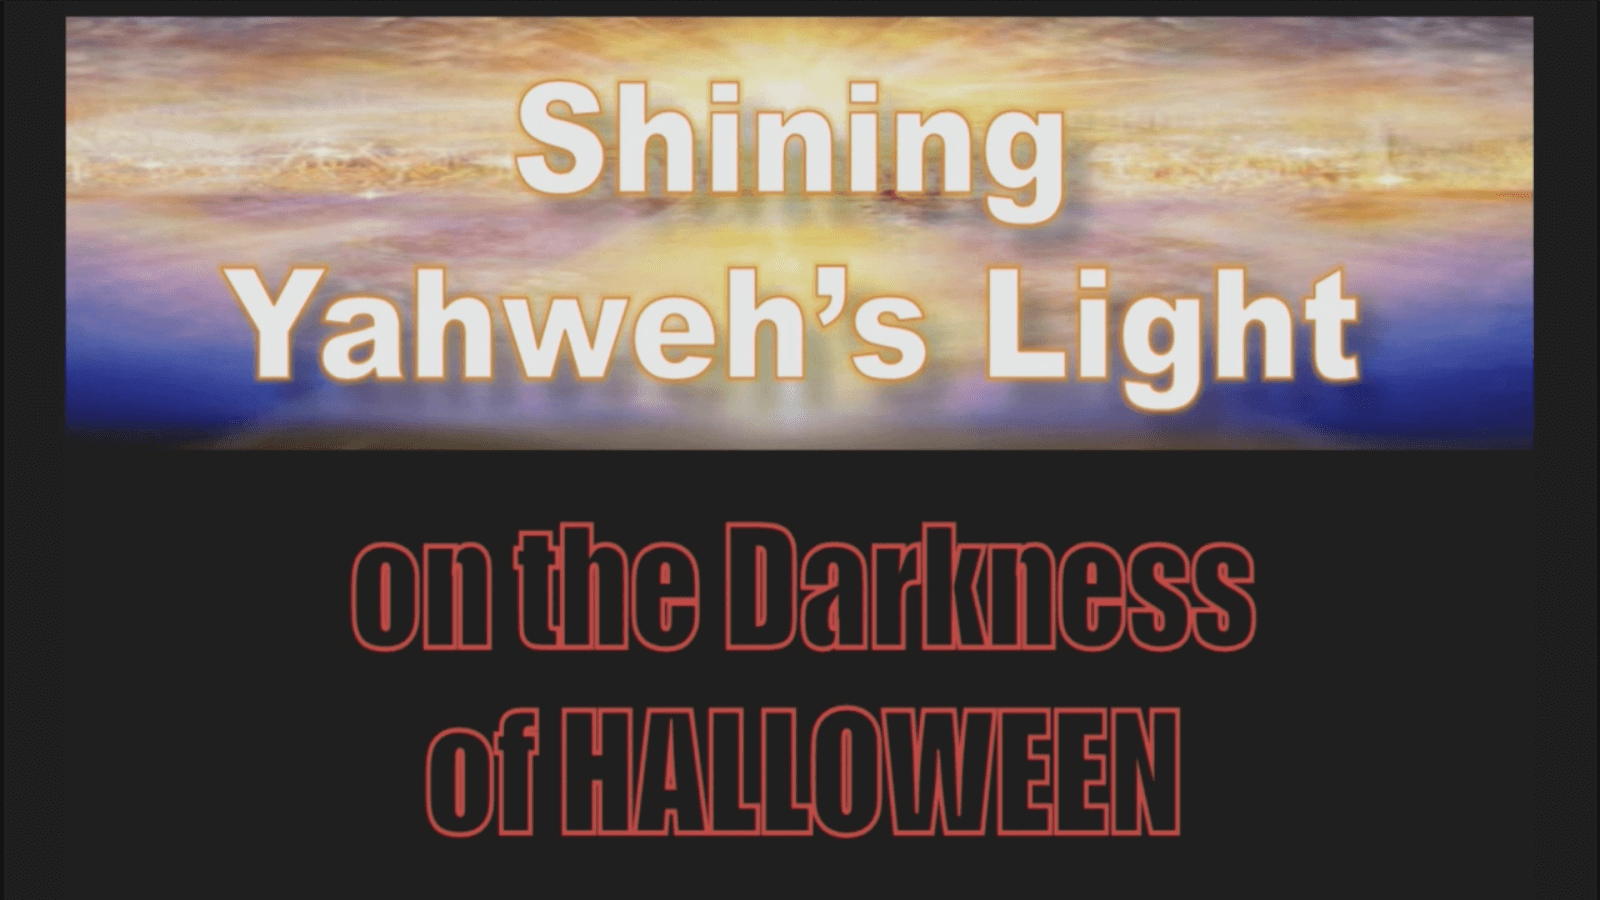 Shining Yahweh's Light on the Darkness of Halloween